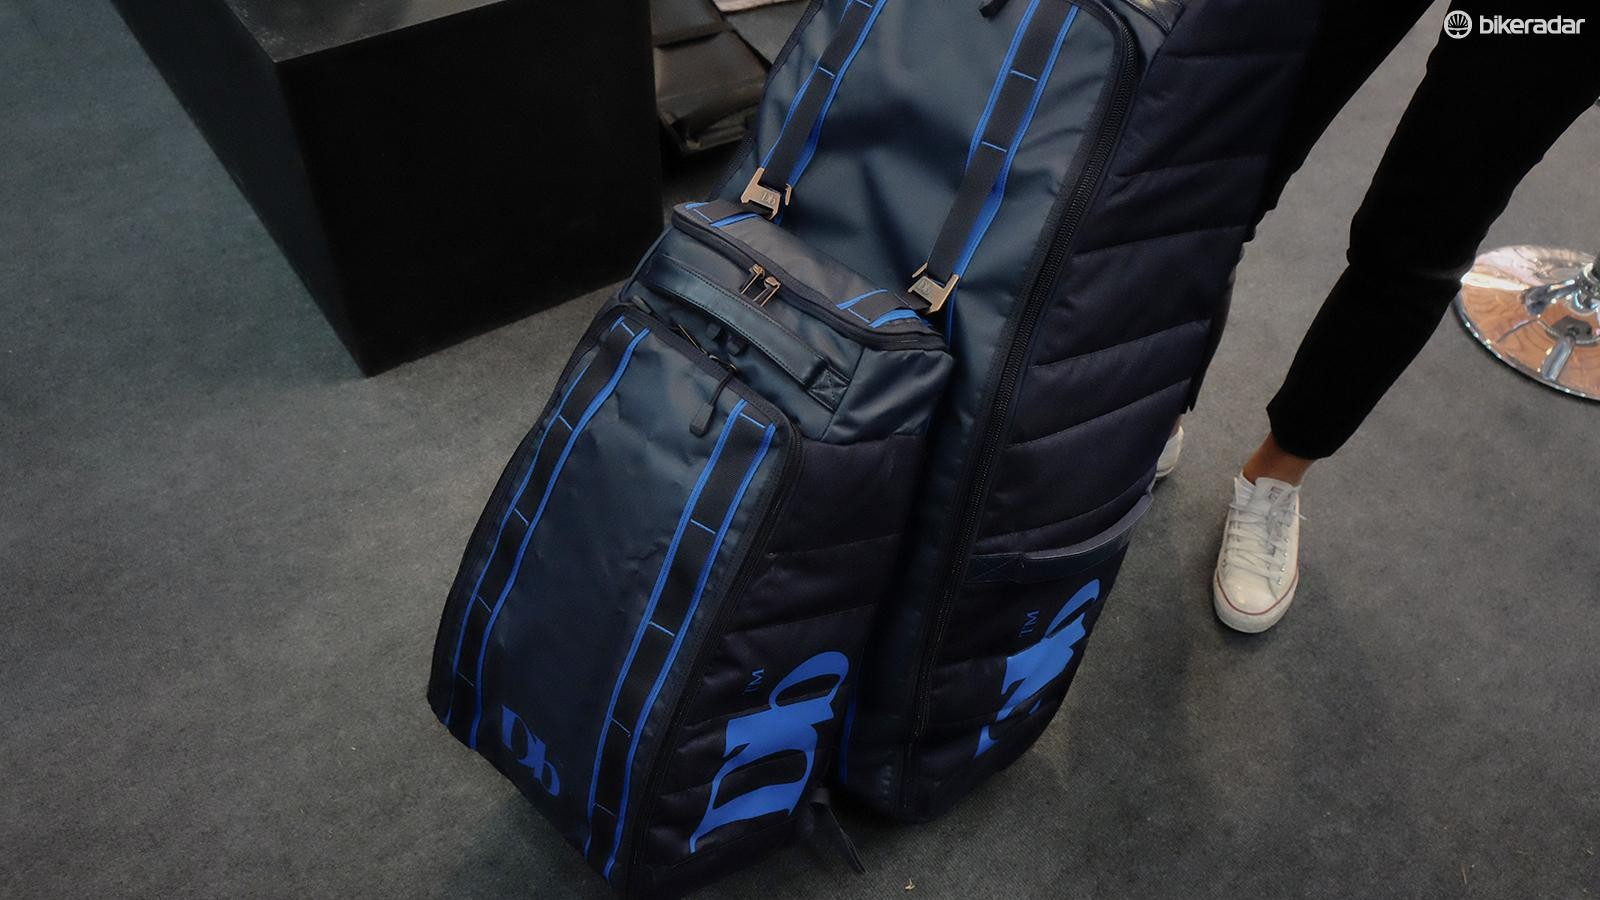 Douchebags got its start making ski bags and luggage. We appreciate the more subtle 'Db' branding on the product.